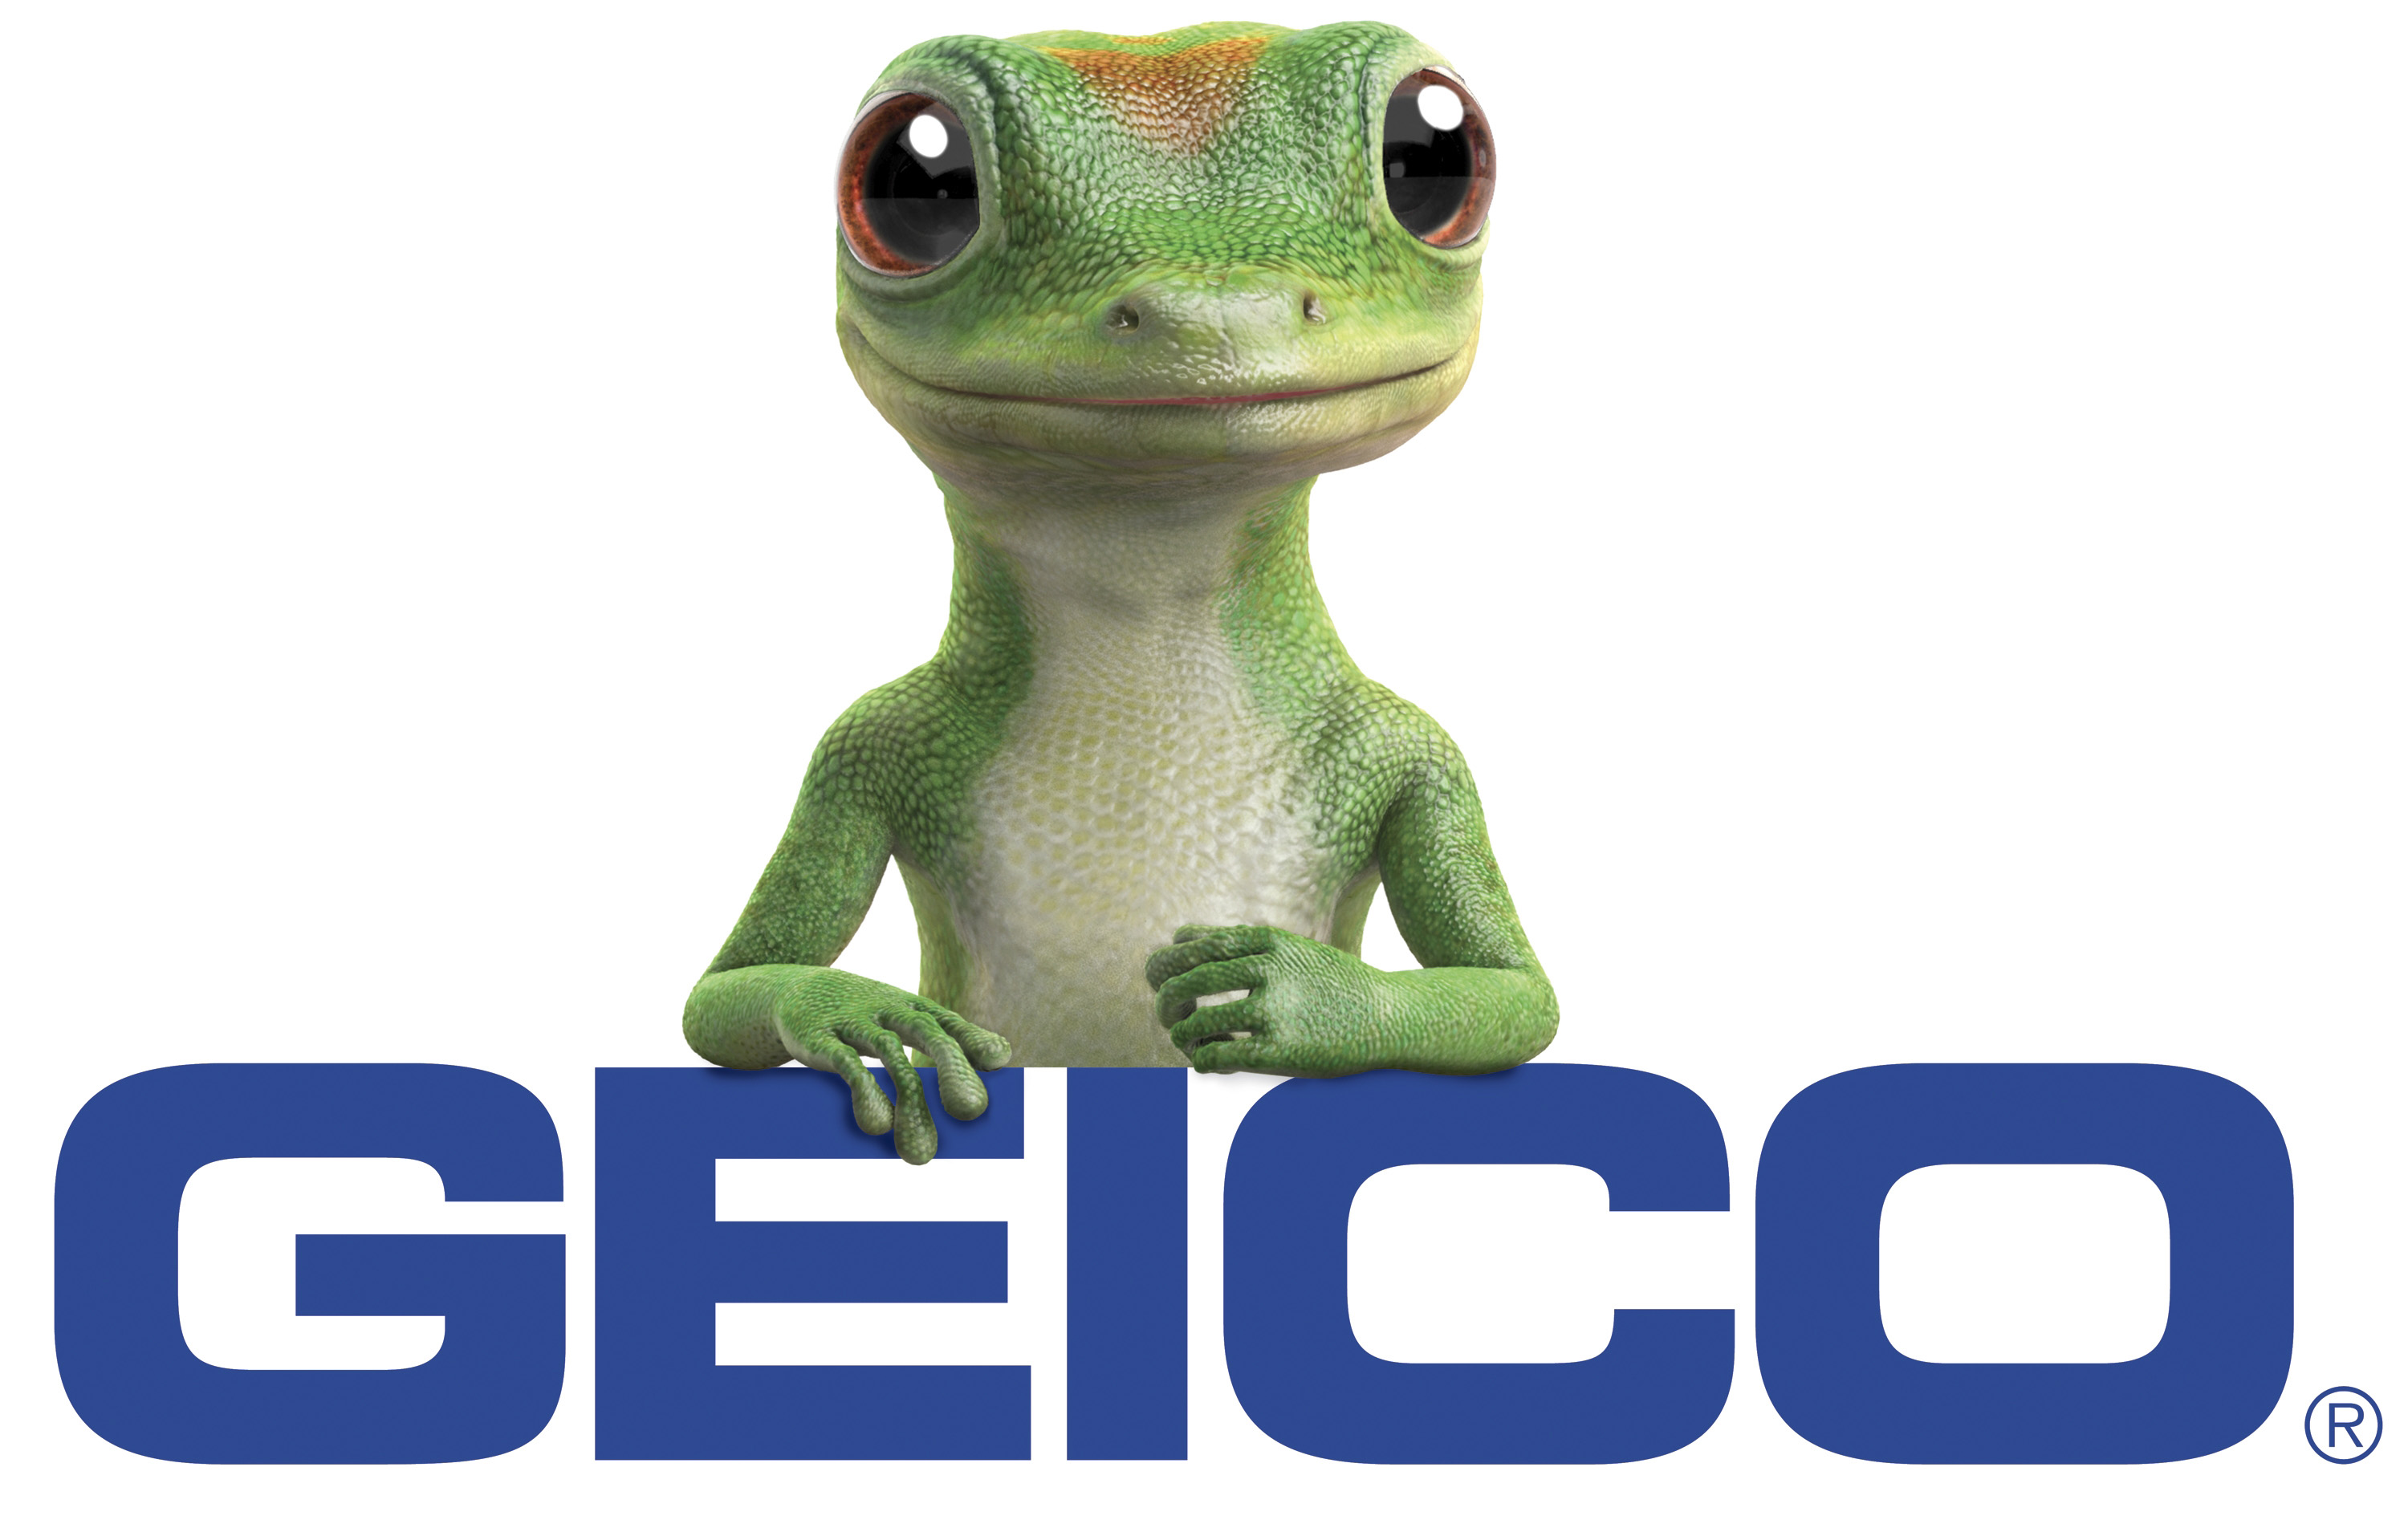 Geico Online Quote Amazing Gieco Quote Impressive Www.geico Geico Online Car Insurance Quotes